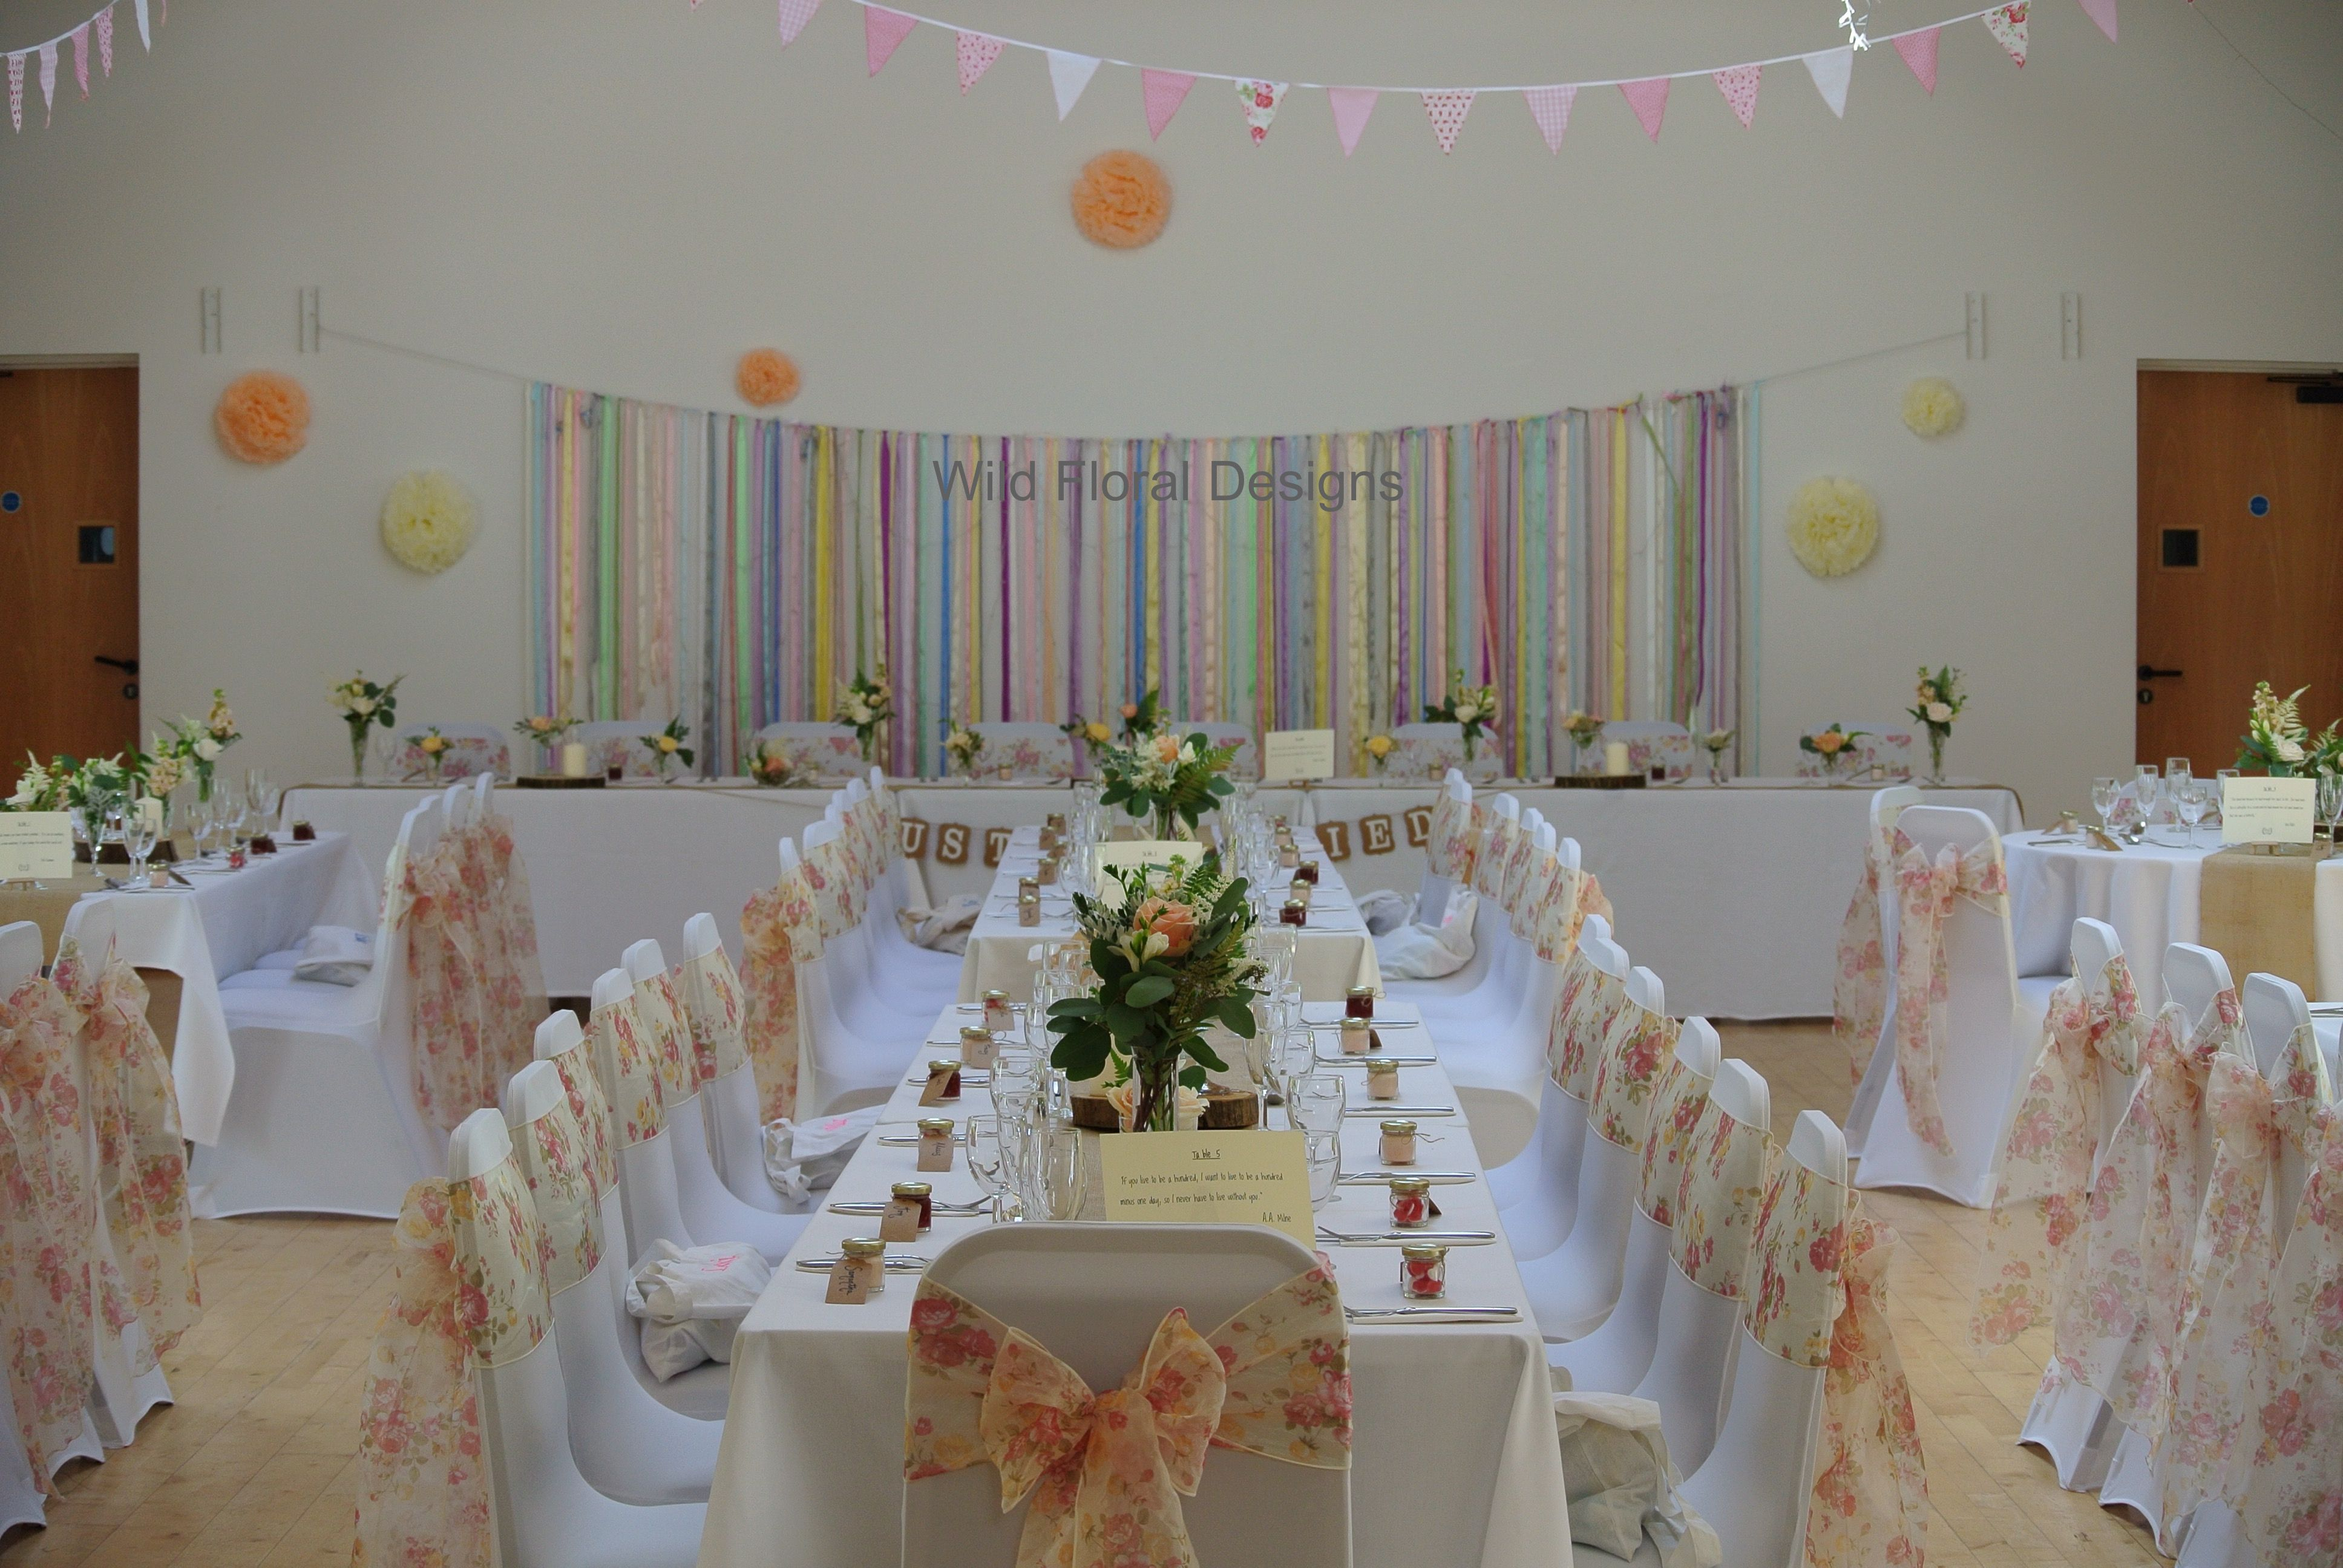 Stokeinteignhead village hall wedding devon chair covers sashes chair covers sashes hessian table runners and floral designs supplied by wild floral designs junglespirit Image collections